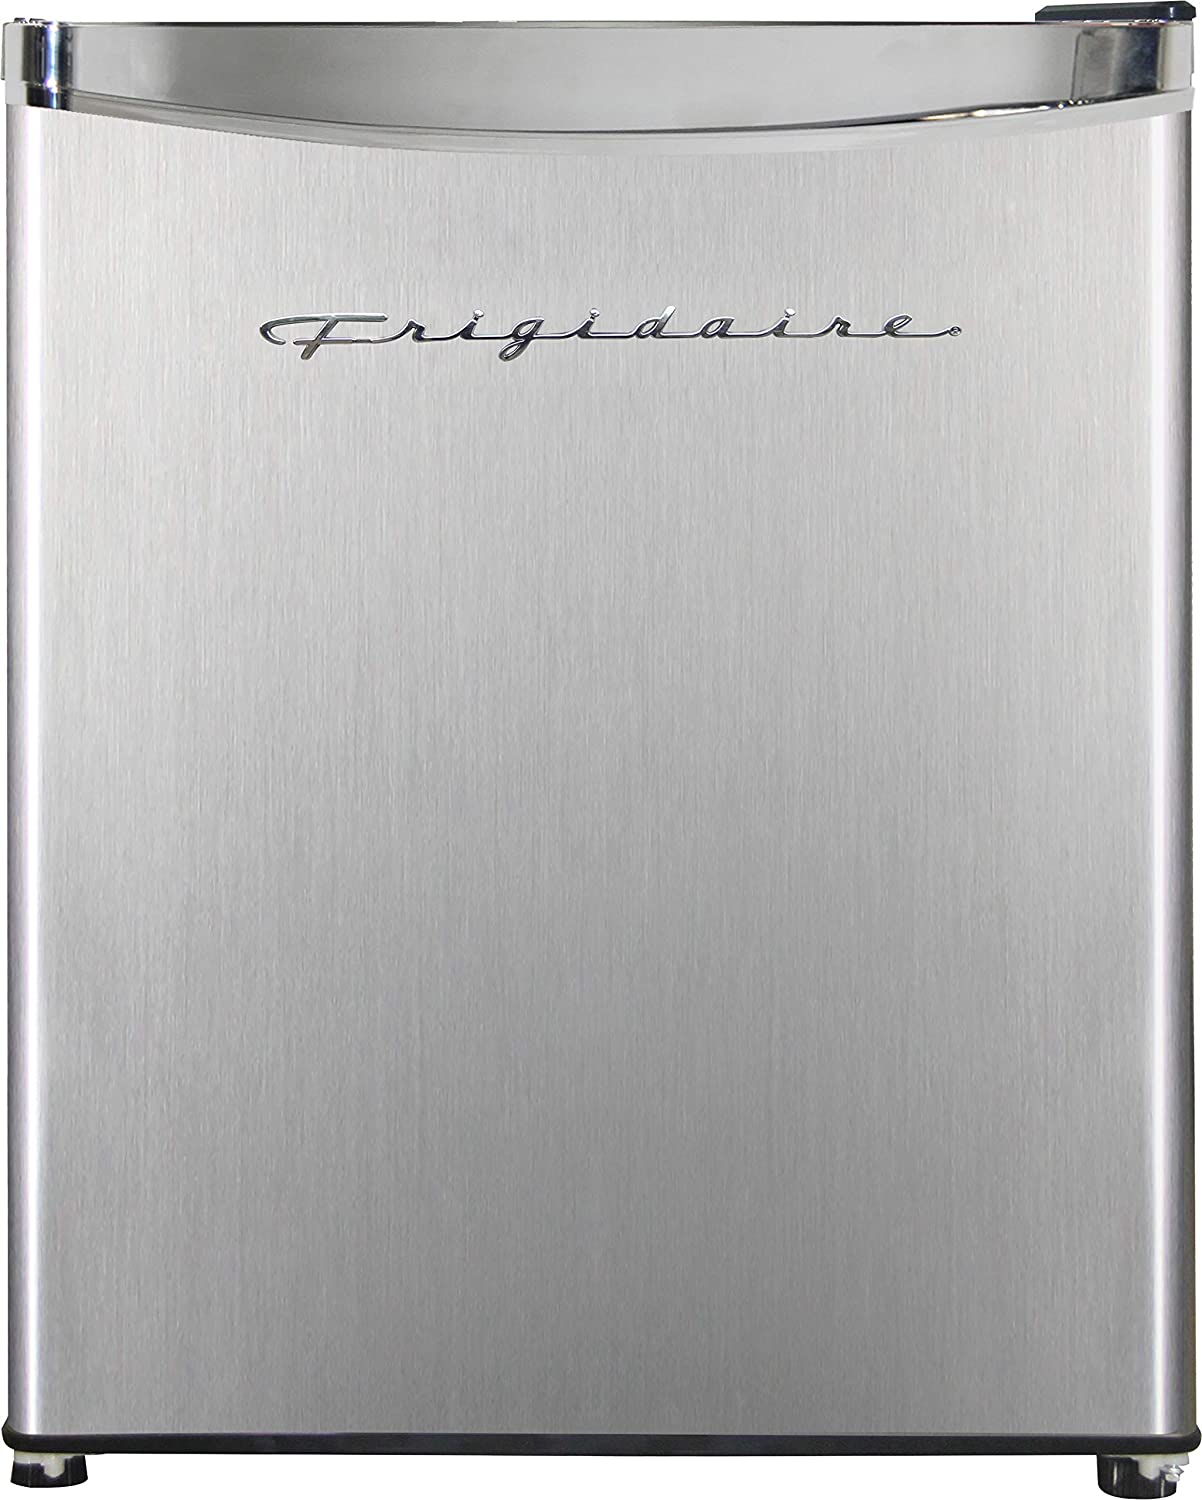 Frigidaire EFR182 1.6 Challenge the lowest price of Japan cu ft Steel High order Perfect Fridge. Mini Stainless